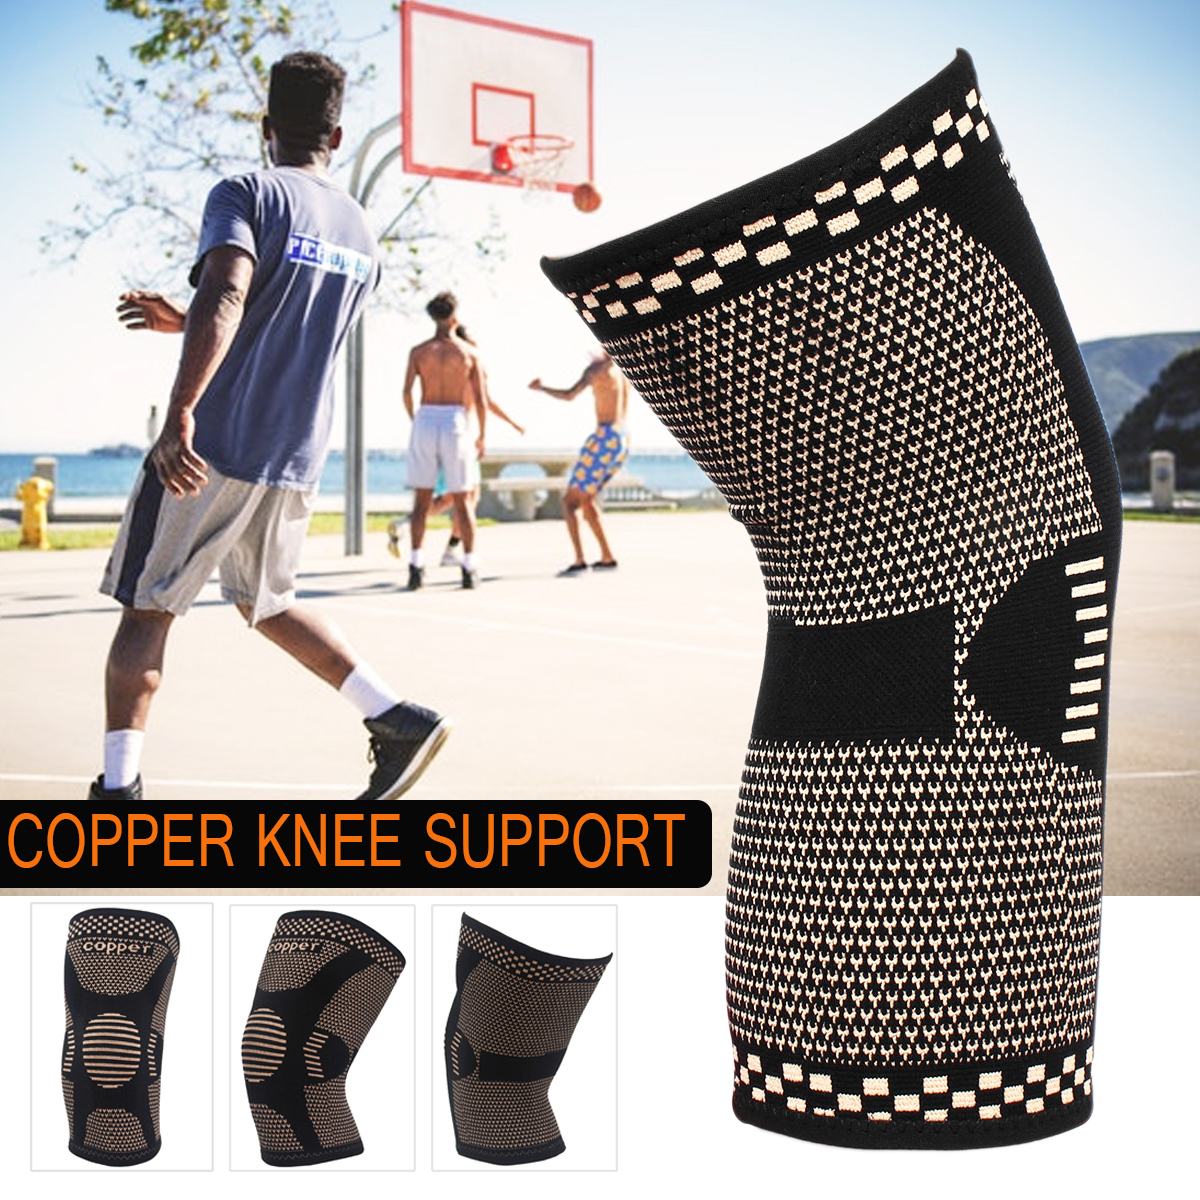 Copper Infused Knee Pads Compression Keep Warm Patella Protector Support Elastic Bandage Knee Brace Support Sport Pad Volleyball